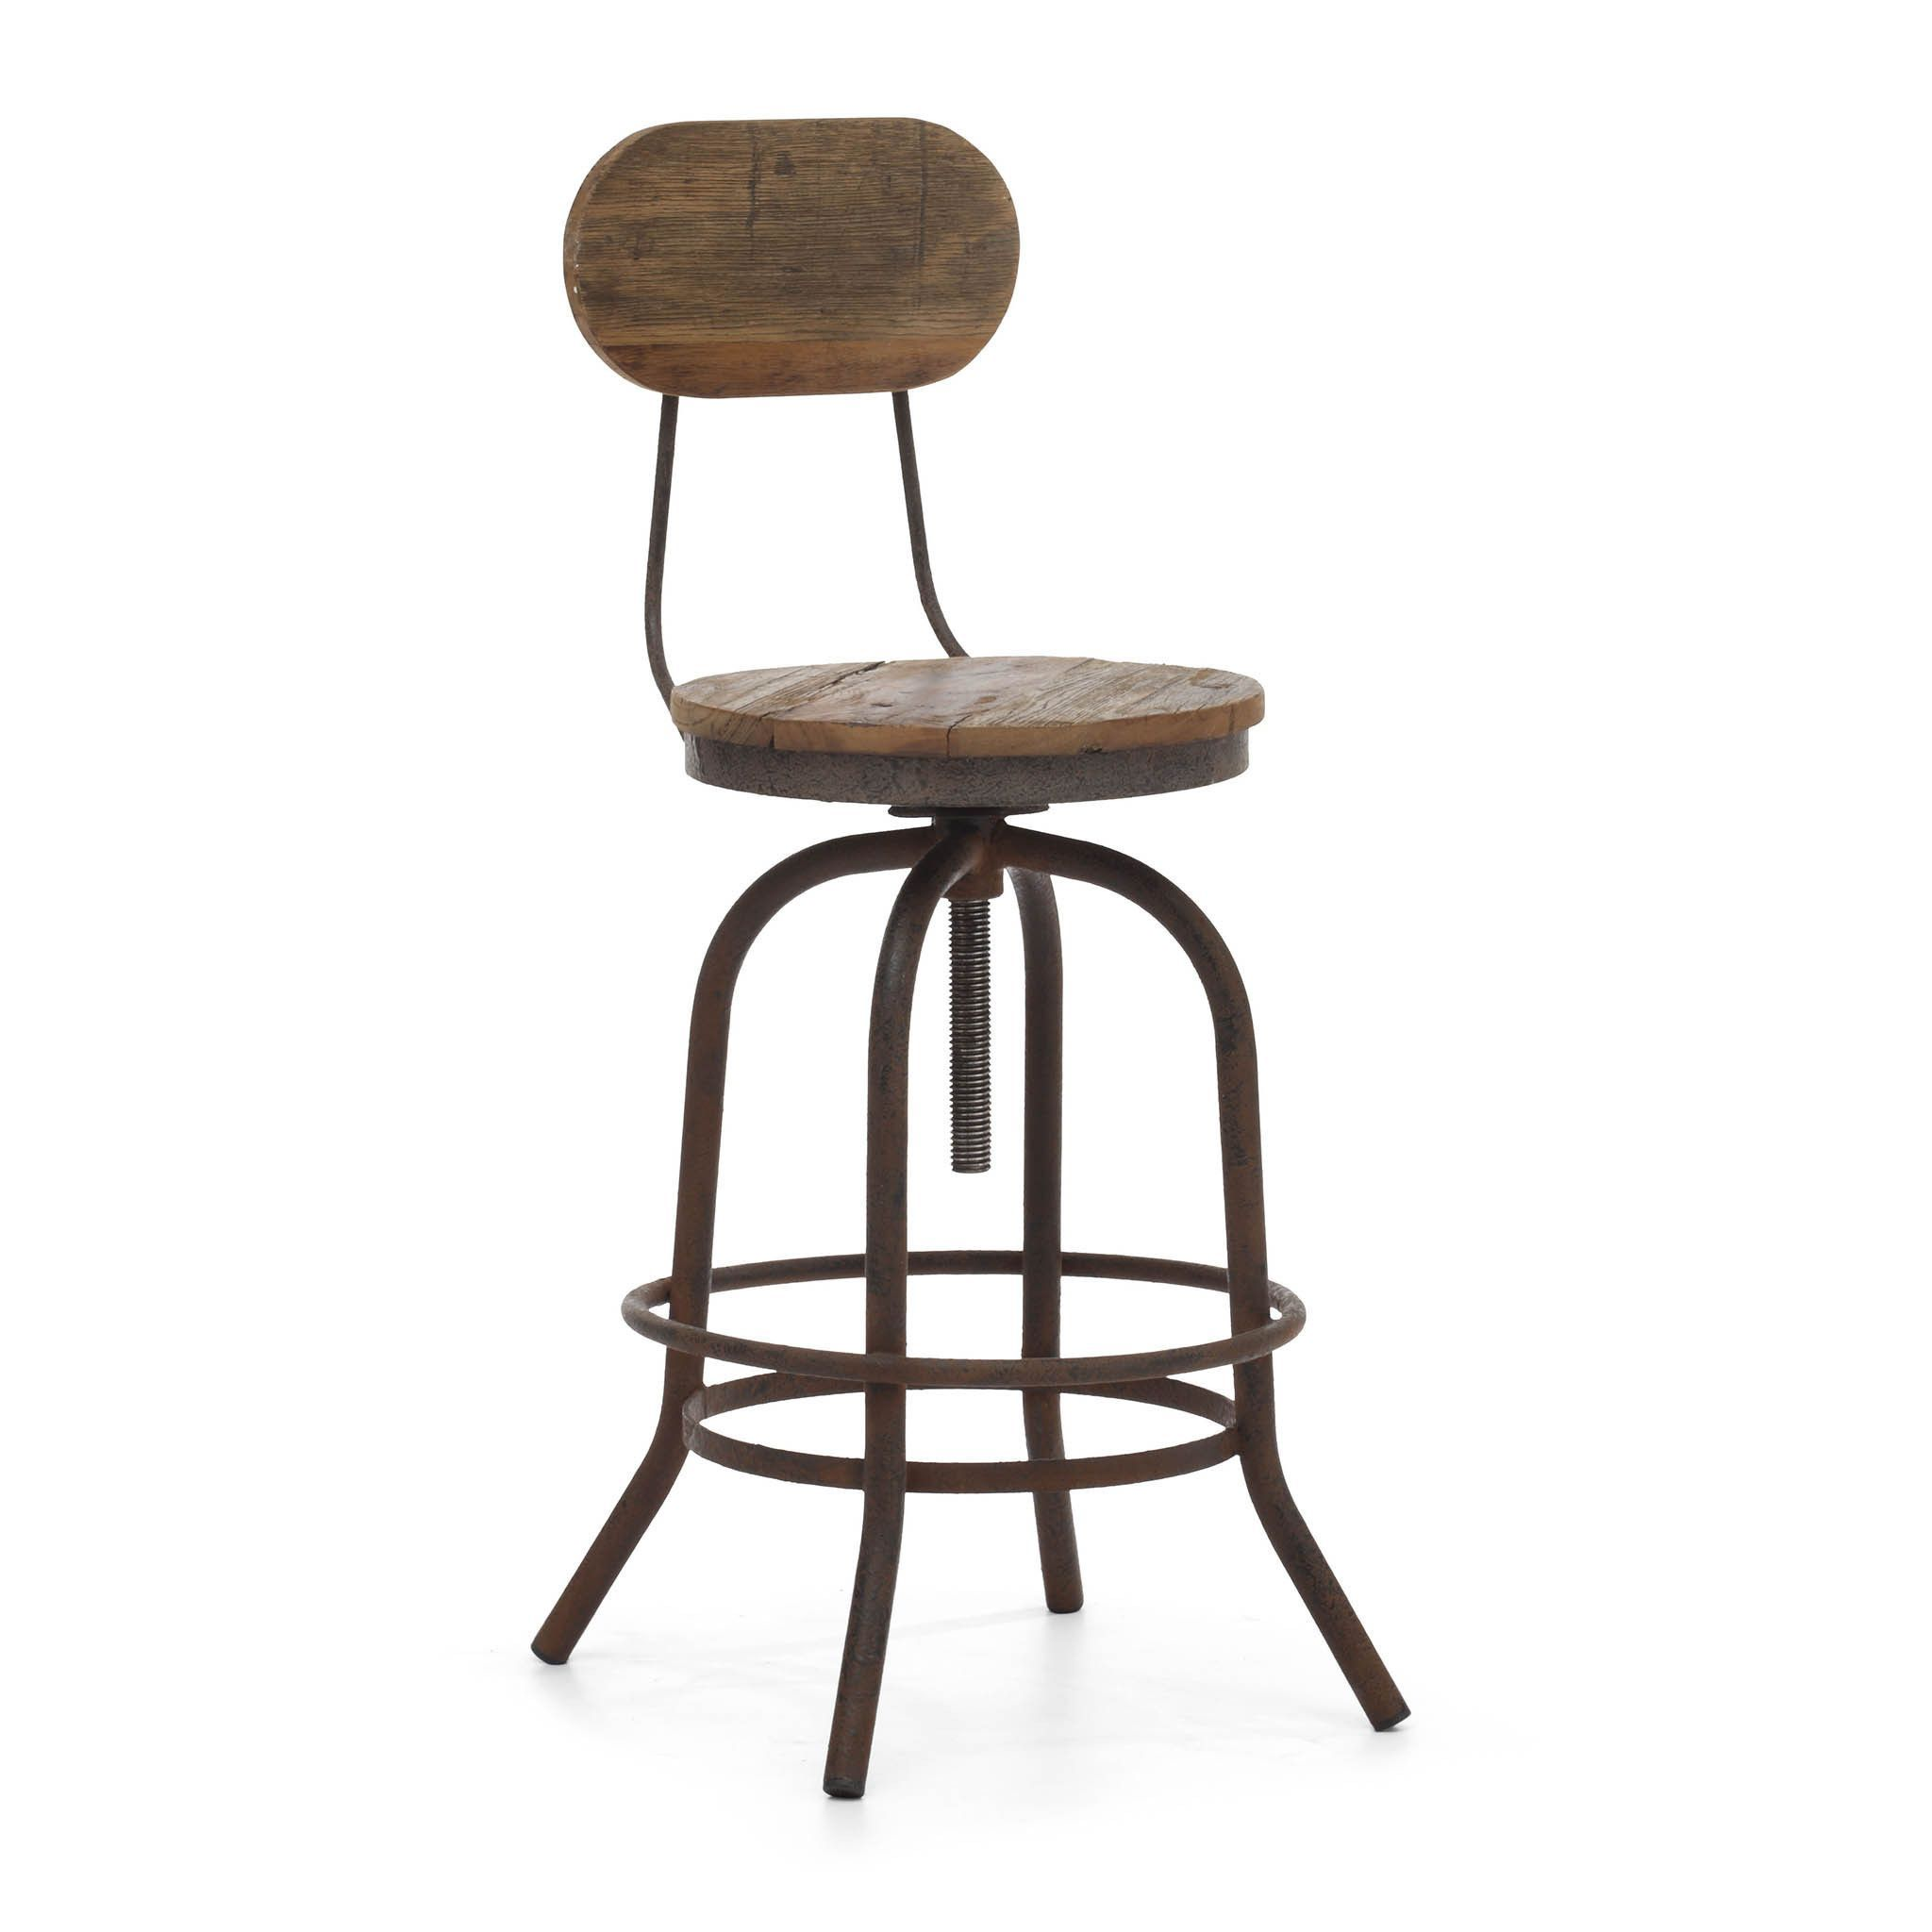 Twin Peaks Adjustable Counter Chair Counter chairs